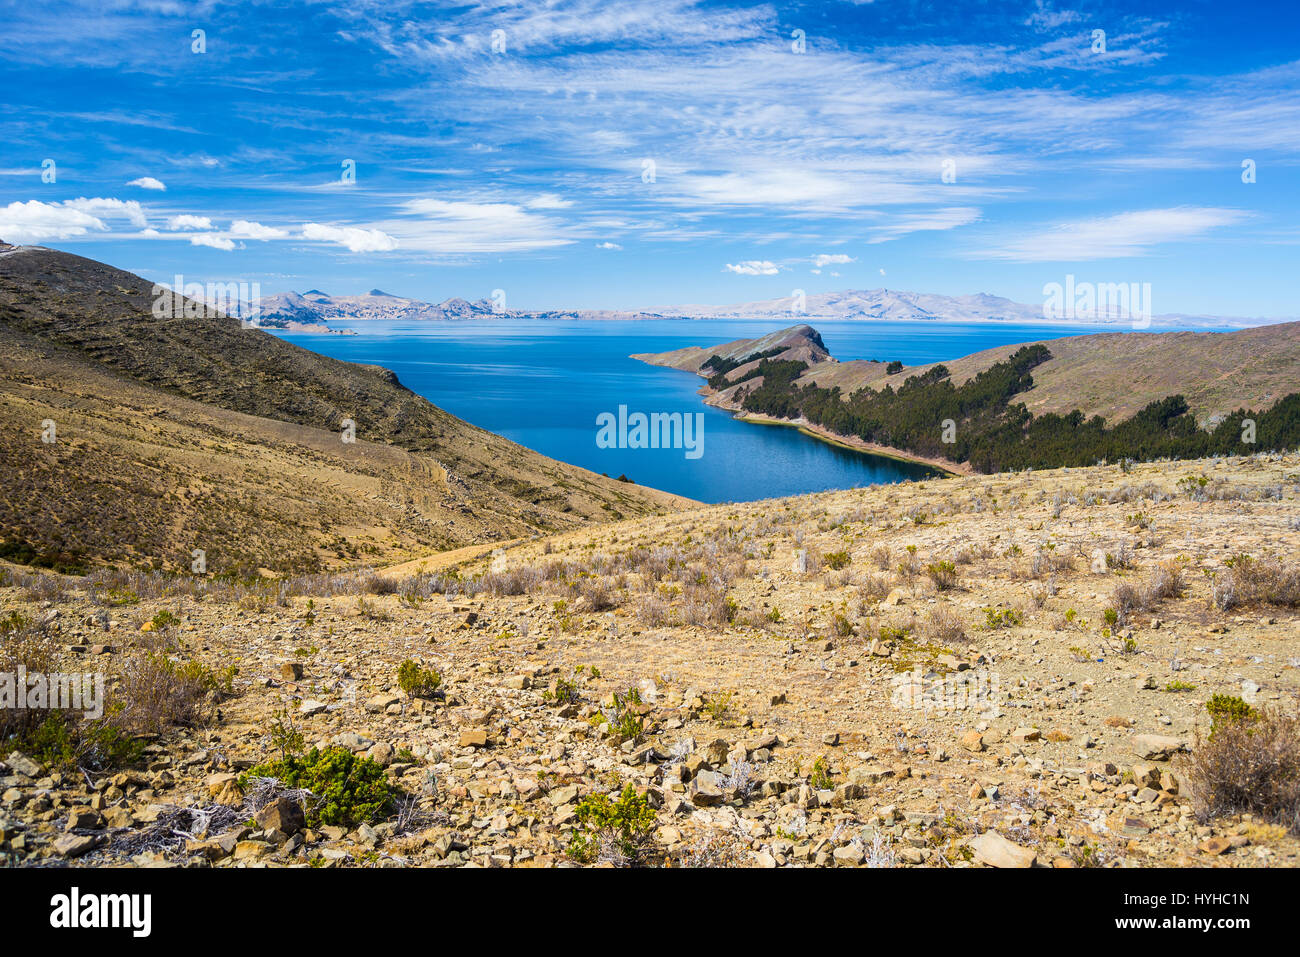 Scenic dramatic sky in winter season at Challapampa Bay on Island of the Sun, Titicaca Lake, among the most scenic - Stock Image